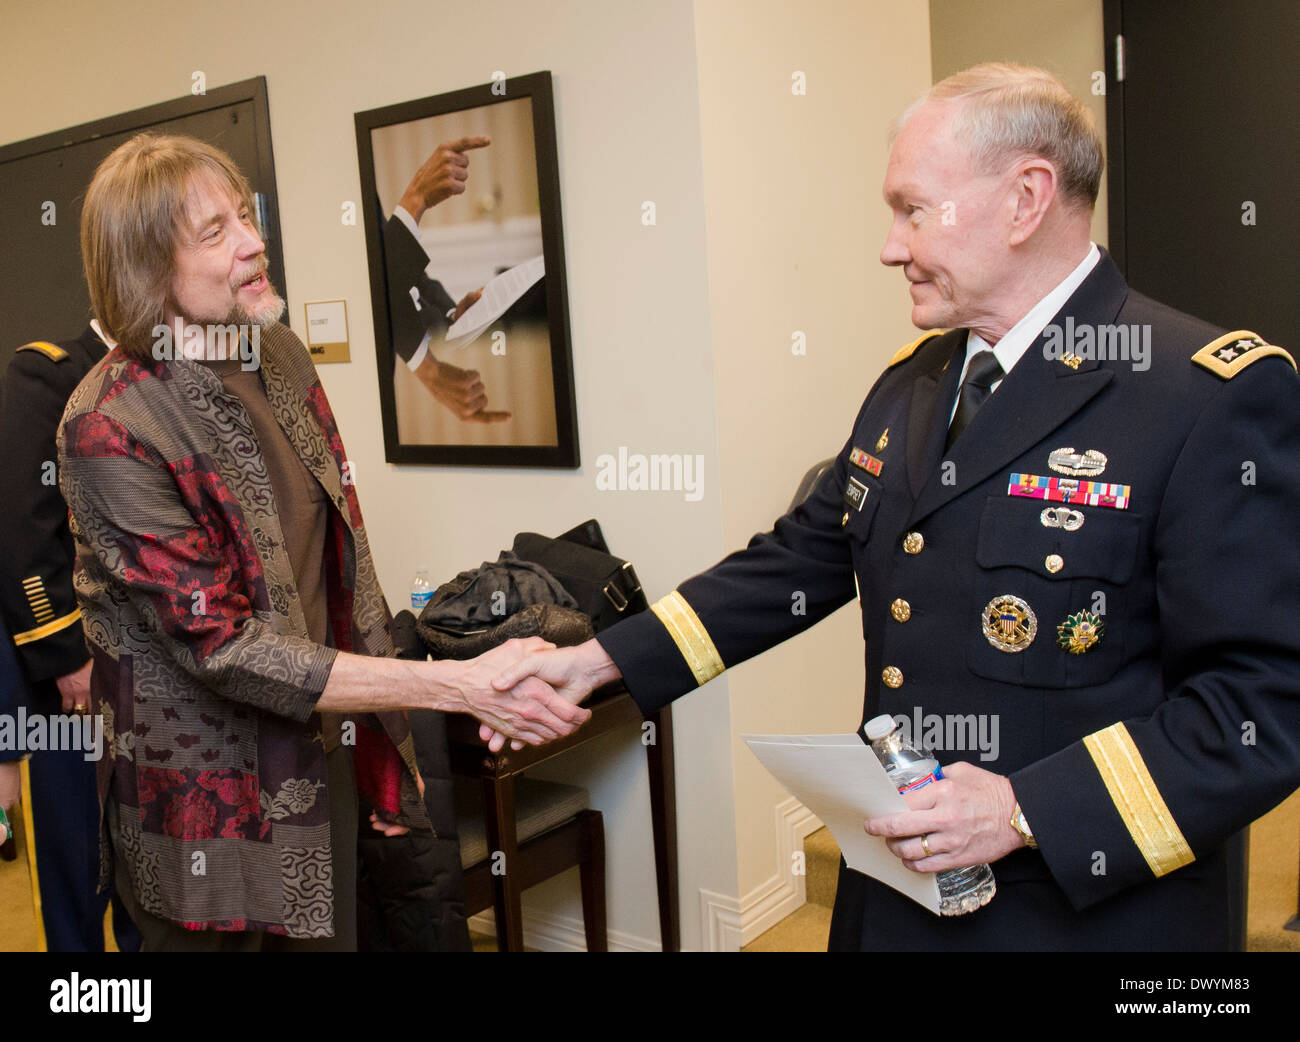 US Joint Chiefs Chairman Gen. Martin Dempsey with Kermit the Frog puppeteer, Steve Whitmire, backstage prior to a movie screening of the new Muppets movie, 'Muppets Most Wanted', for military families at the White House March 12, 2014 in Washington, DC. - Stock Image